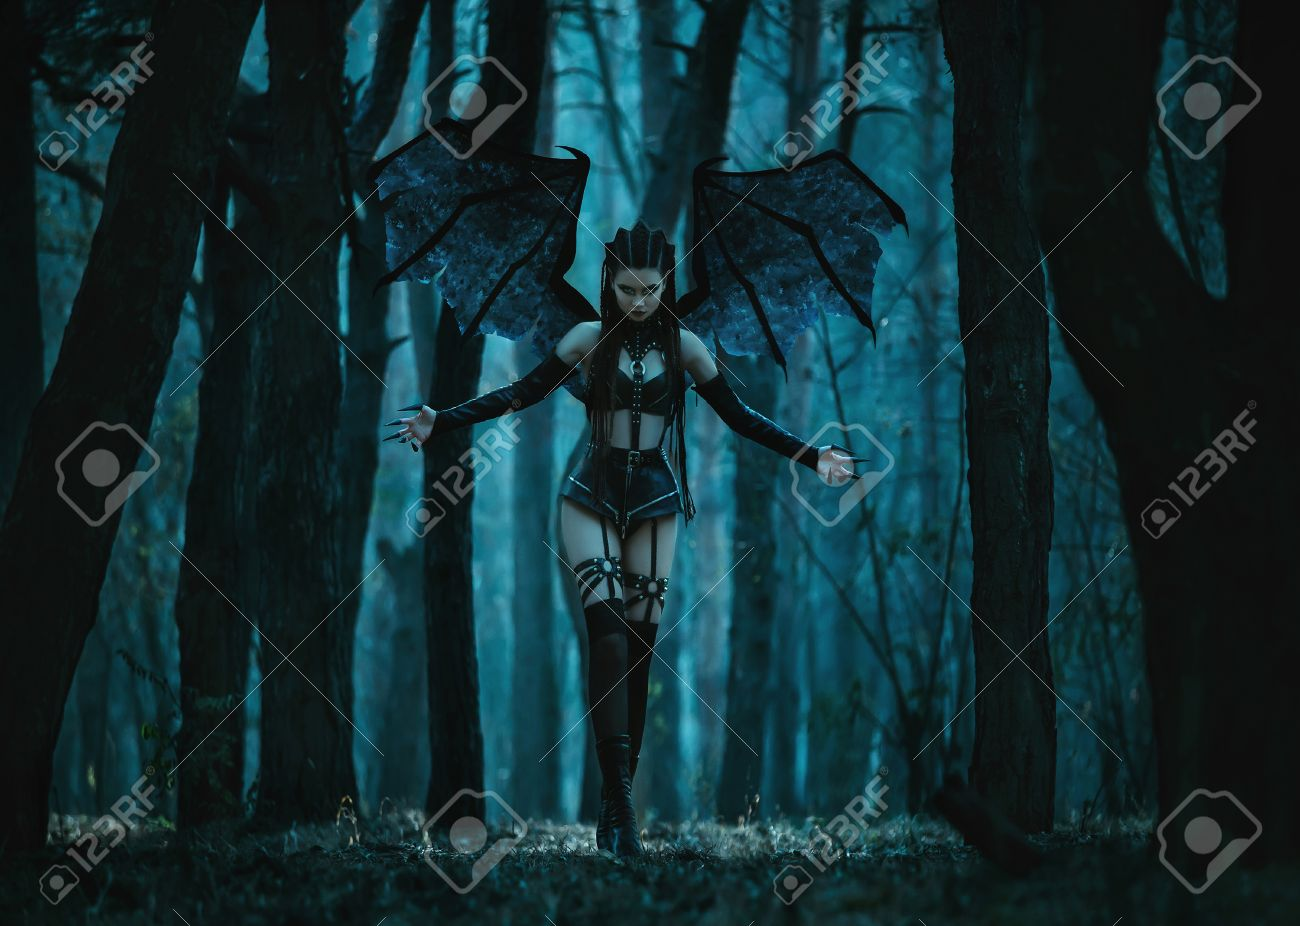 Girl vampire, a demon with bat wings, a succubus,through the dark forest girl walking a bat with huge wings and outfit,fashionable toning,creative computer colors - 52439045